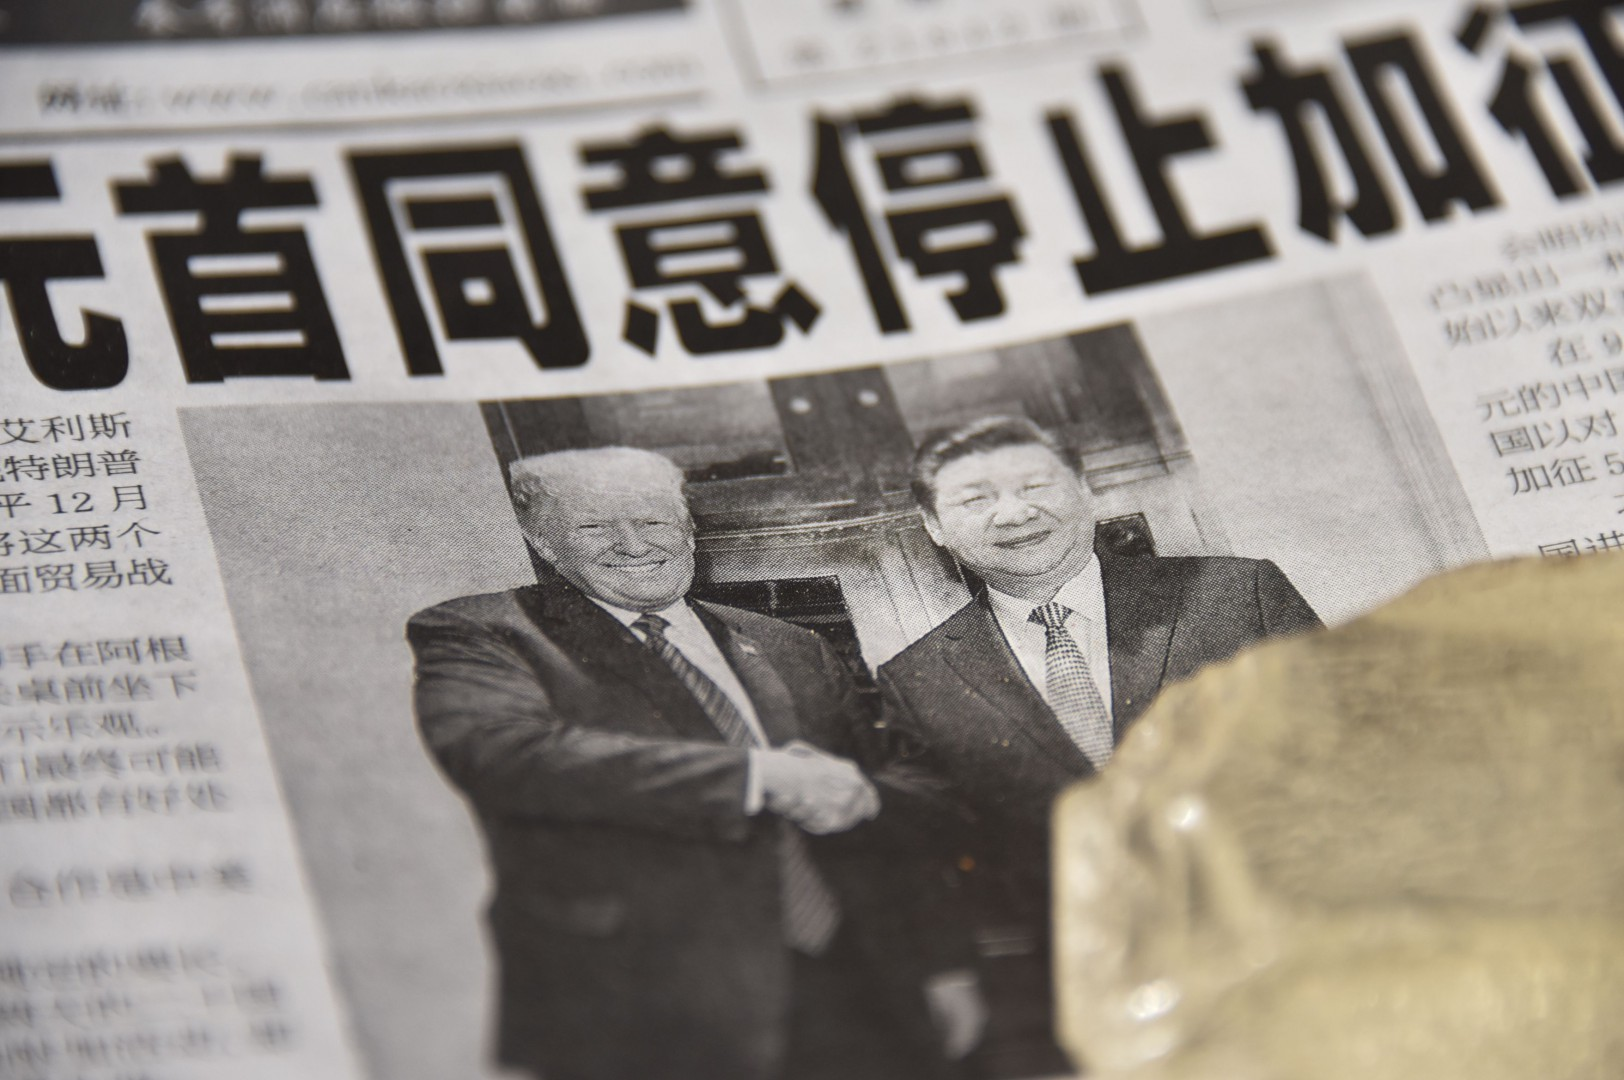 """A newspaper featuring a front page story about the meeting between US President Donald Trump and Chinese President Xi Jinping as seen at a news stand in Beijing on December 3, 2018. - The headline says the two leaders agreed not to increase tarrifs. China's state-run media hailed the trade war truce with the United States as """"momentous"""" on December 3 but warned of complex negotiations ahead, even as President Donald Trump said Beijing agreed to cut car tariffs. (Photo by GREG BAKER / AFP)"""